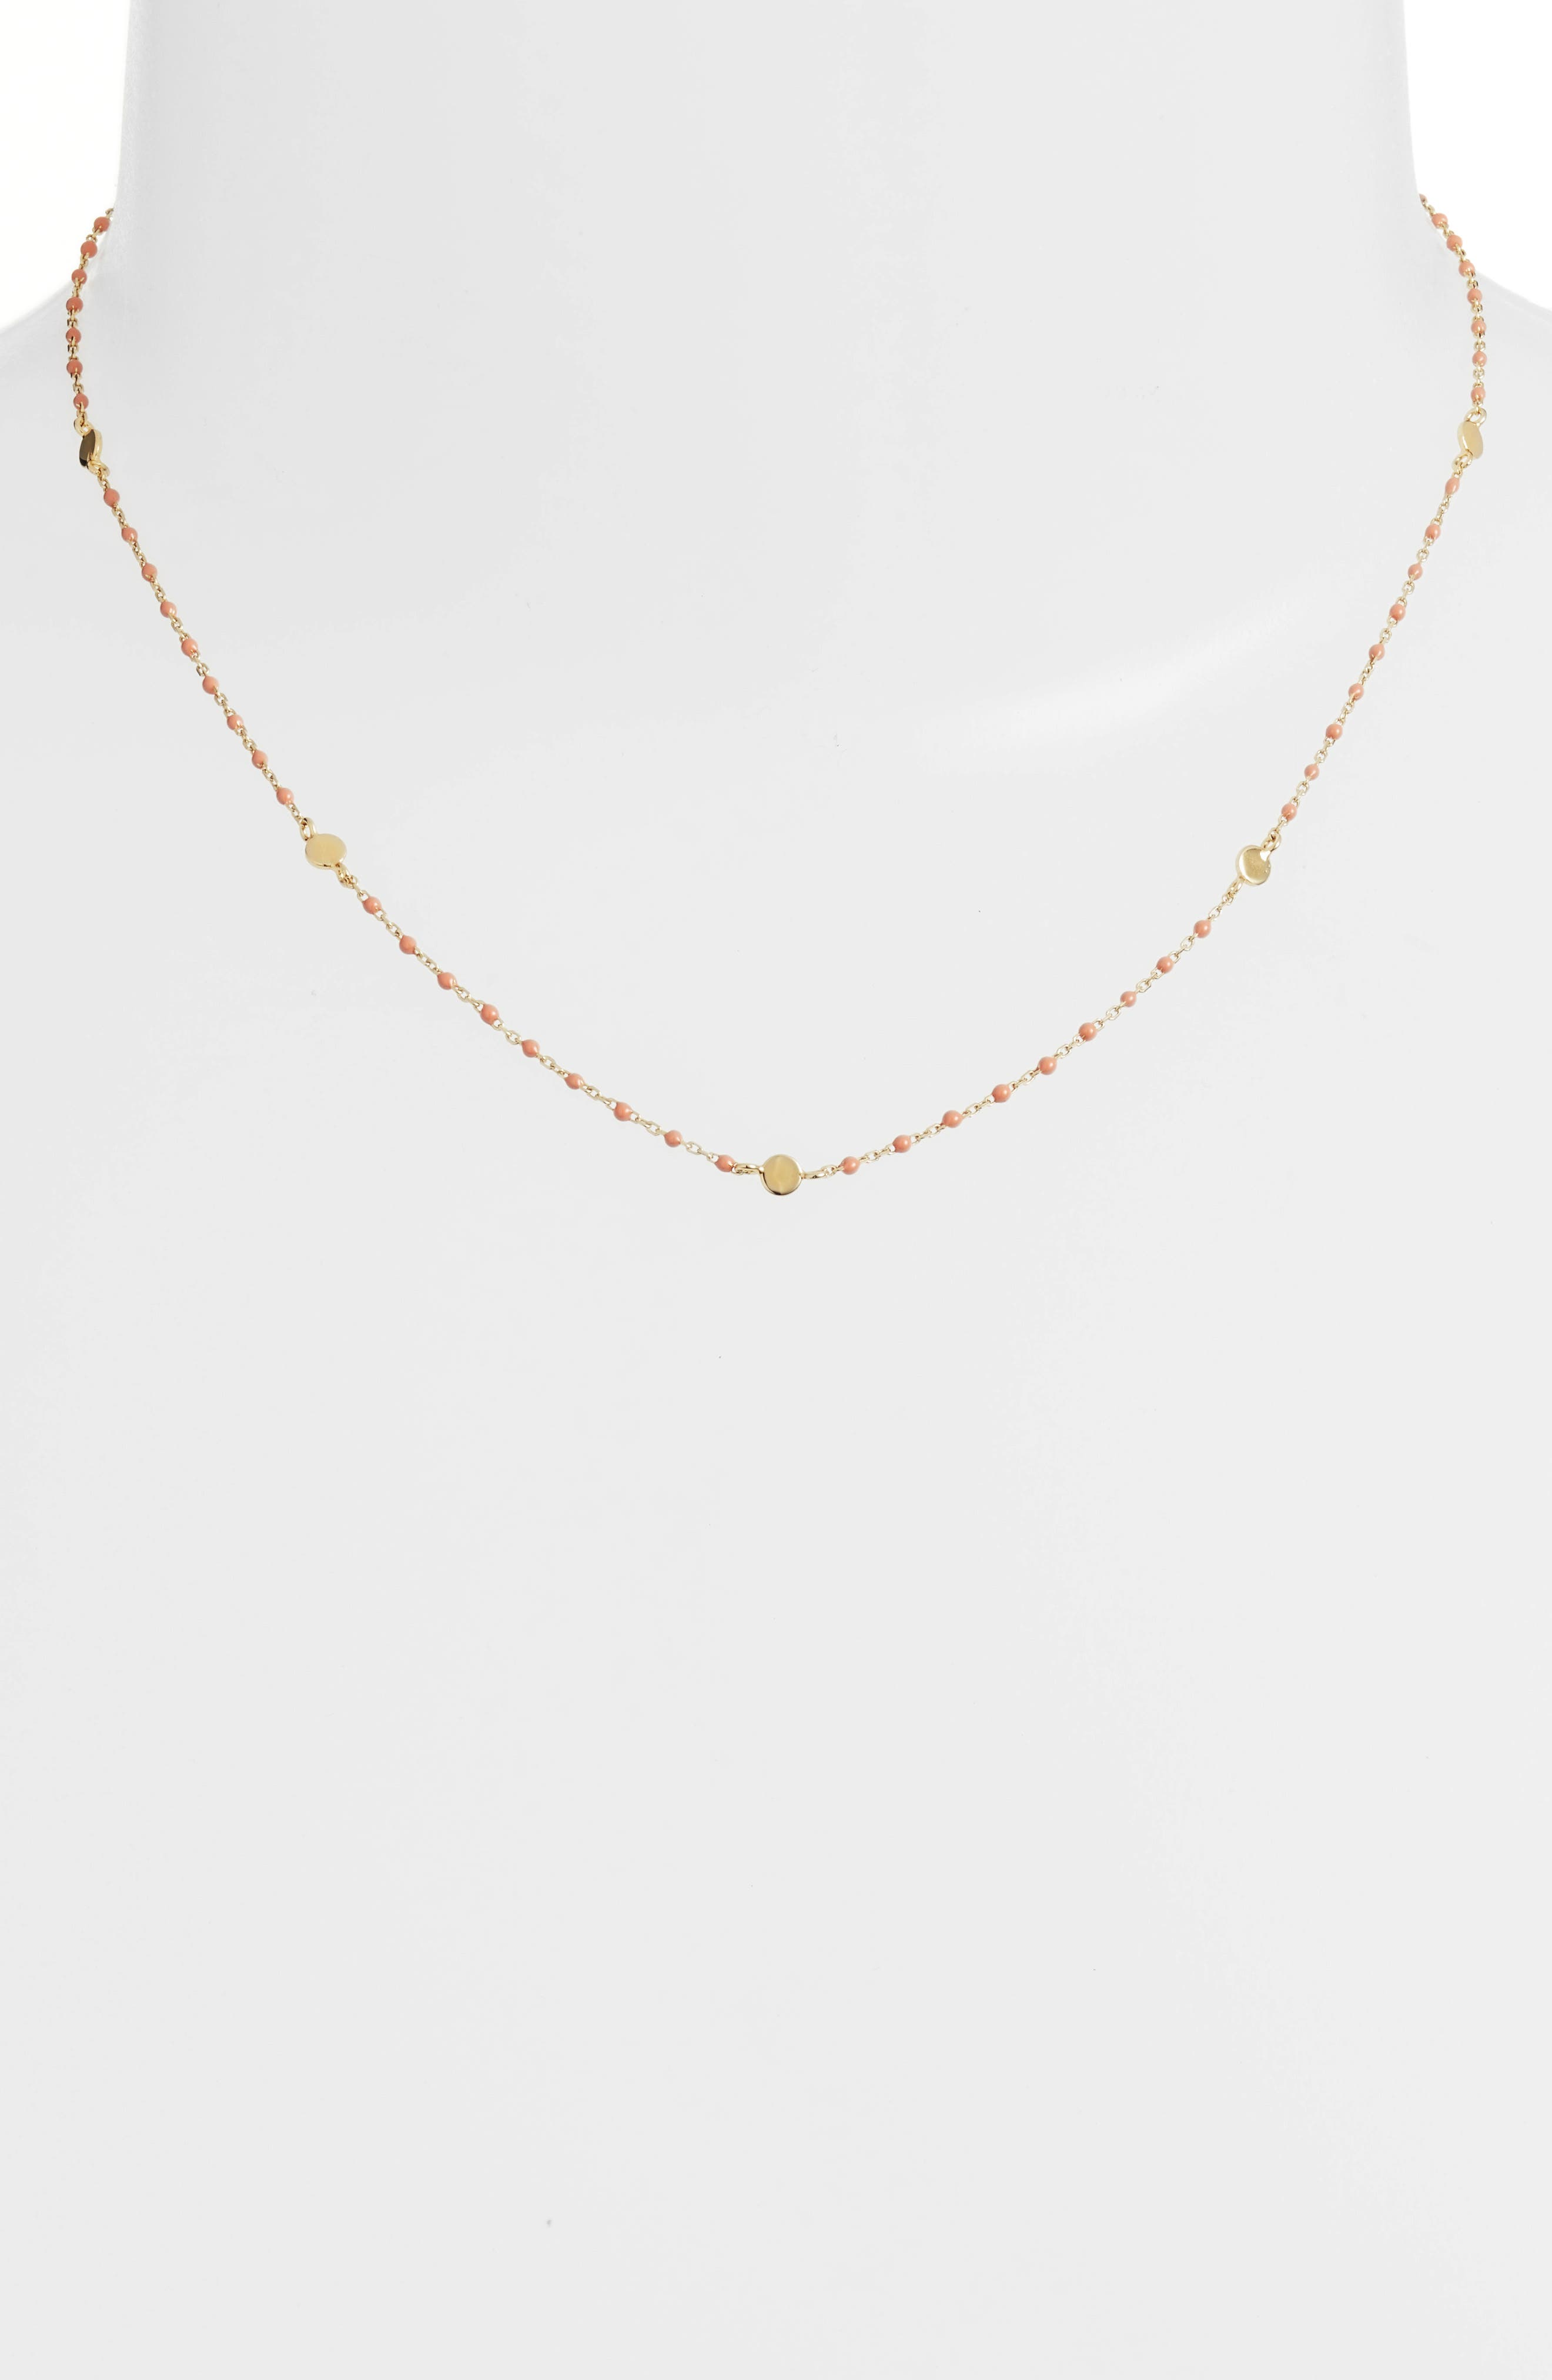 Beaded Station Necklace,                             Main thumbnail 1, color,                             Gold/ Coral